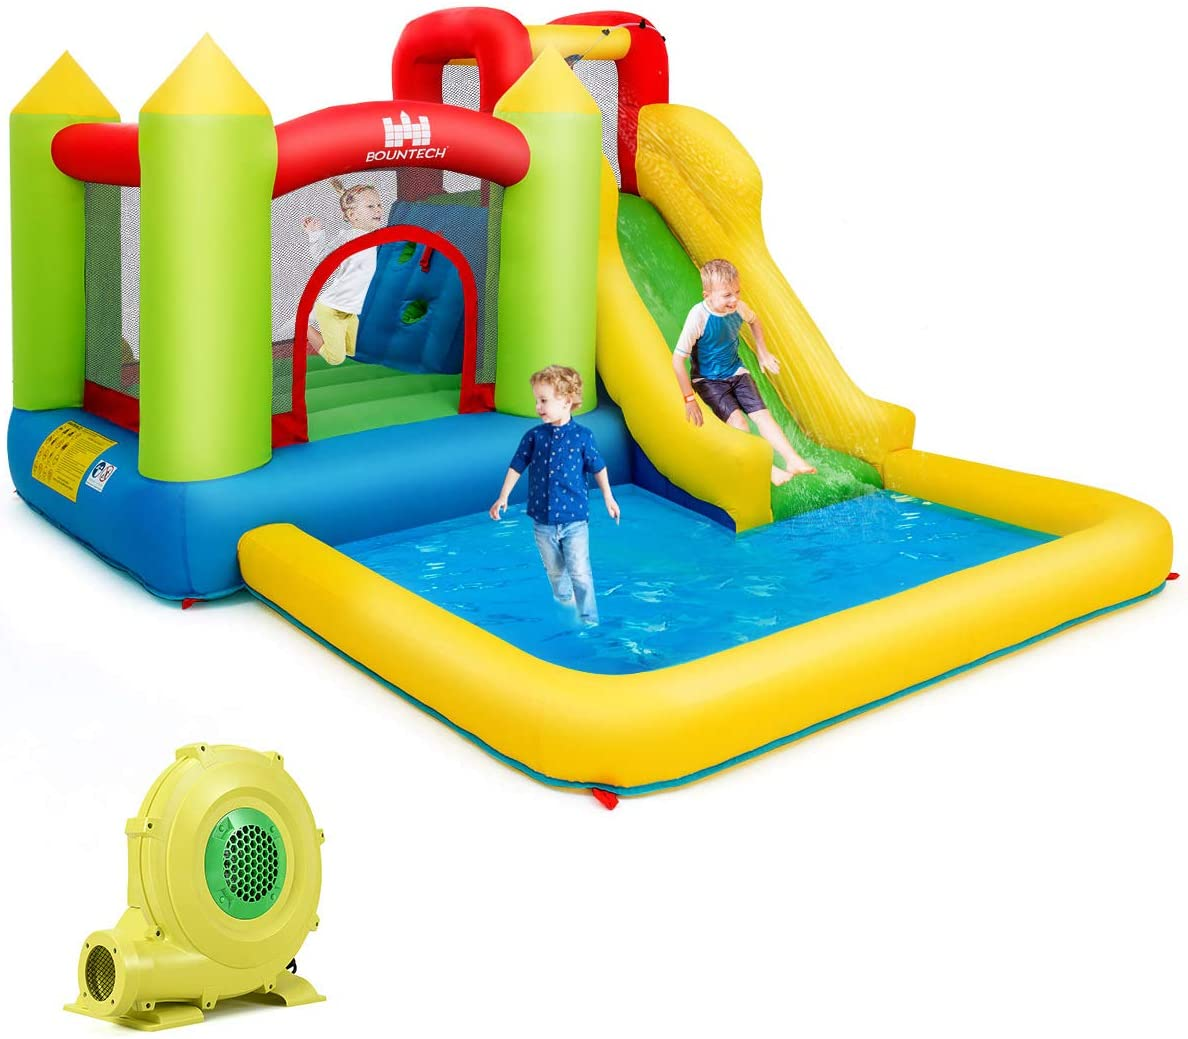 Costzon Inflatable Bounce House, Kids Water